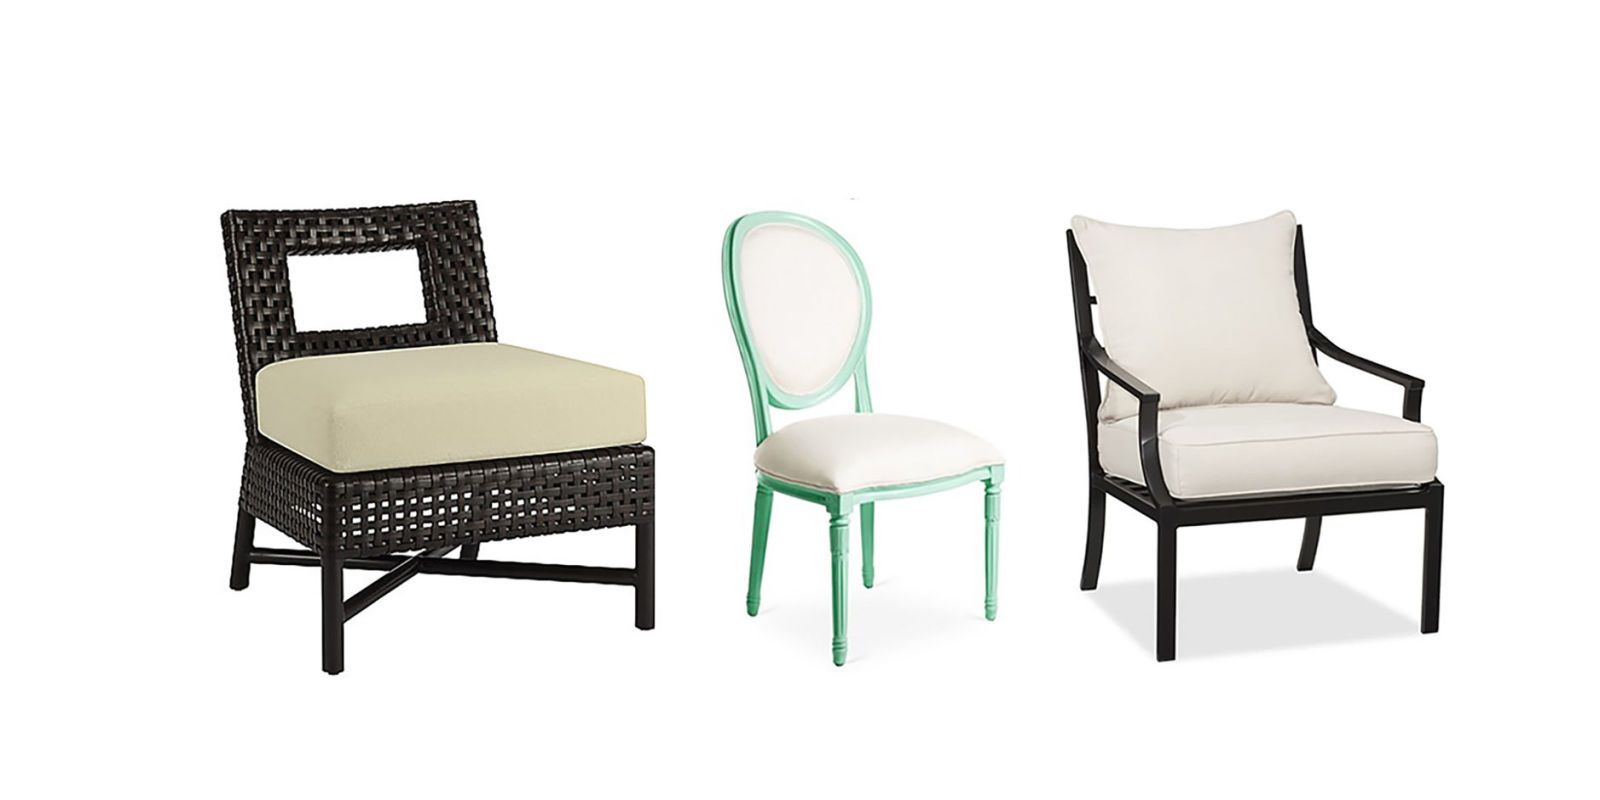 Whether You Have A Large Backyard Or A Small Patio, These Outdoor Furniture  Pieces Make Summer More Comfortable (and More Stylish).